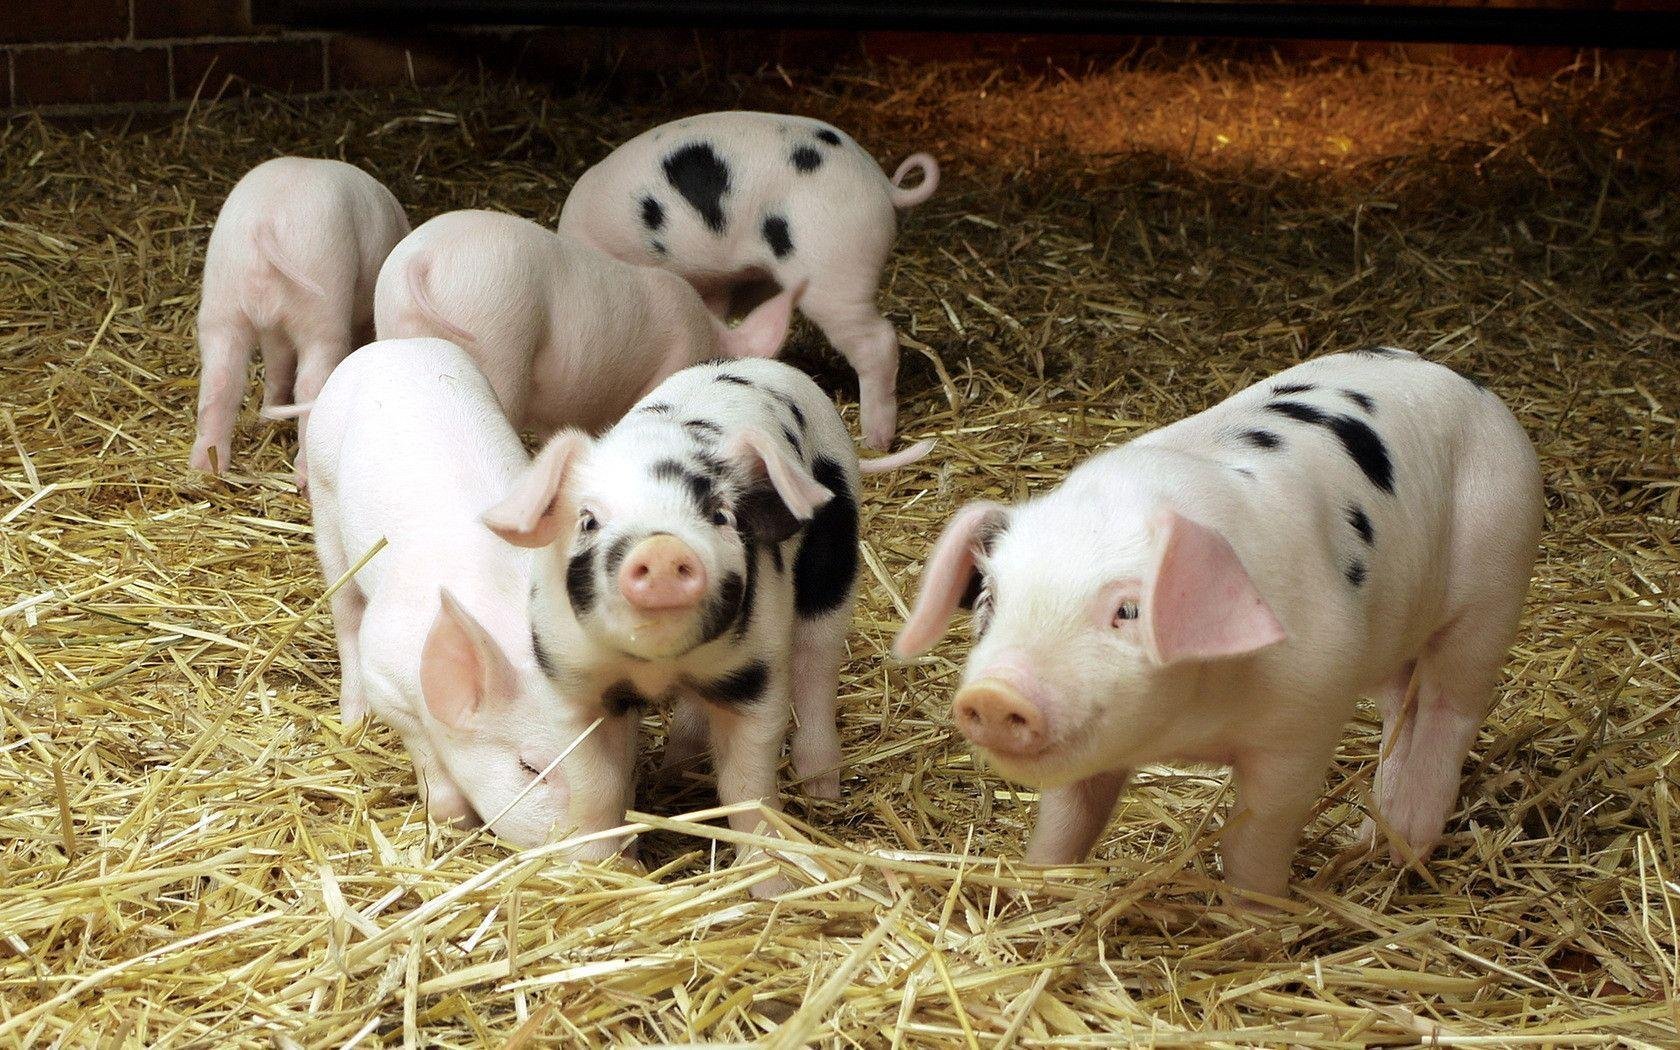 Are pigs cute? Y8WzRvZ